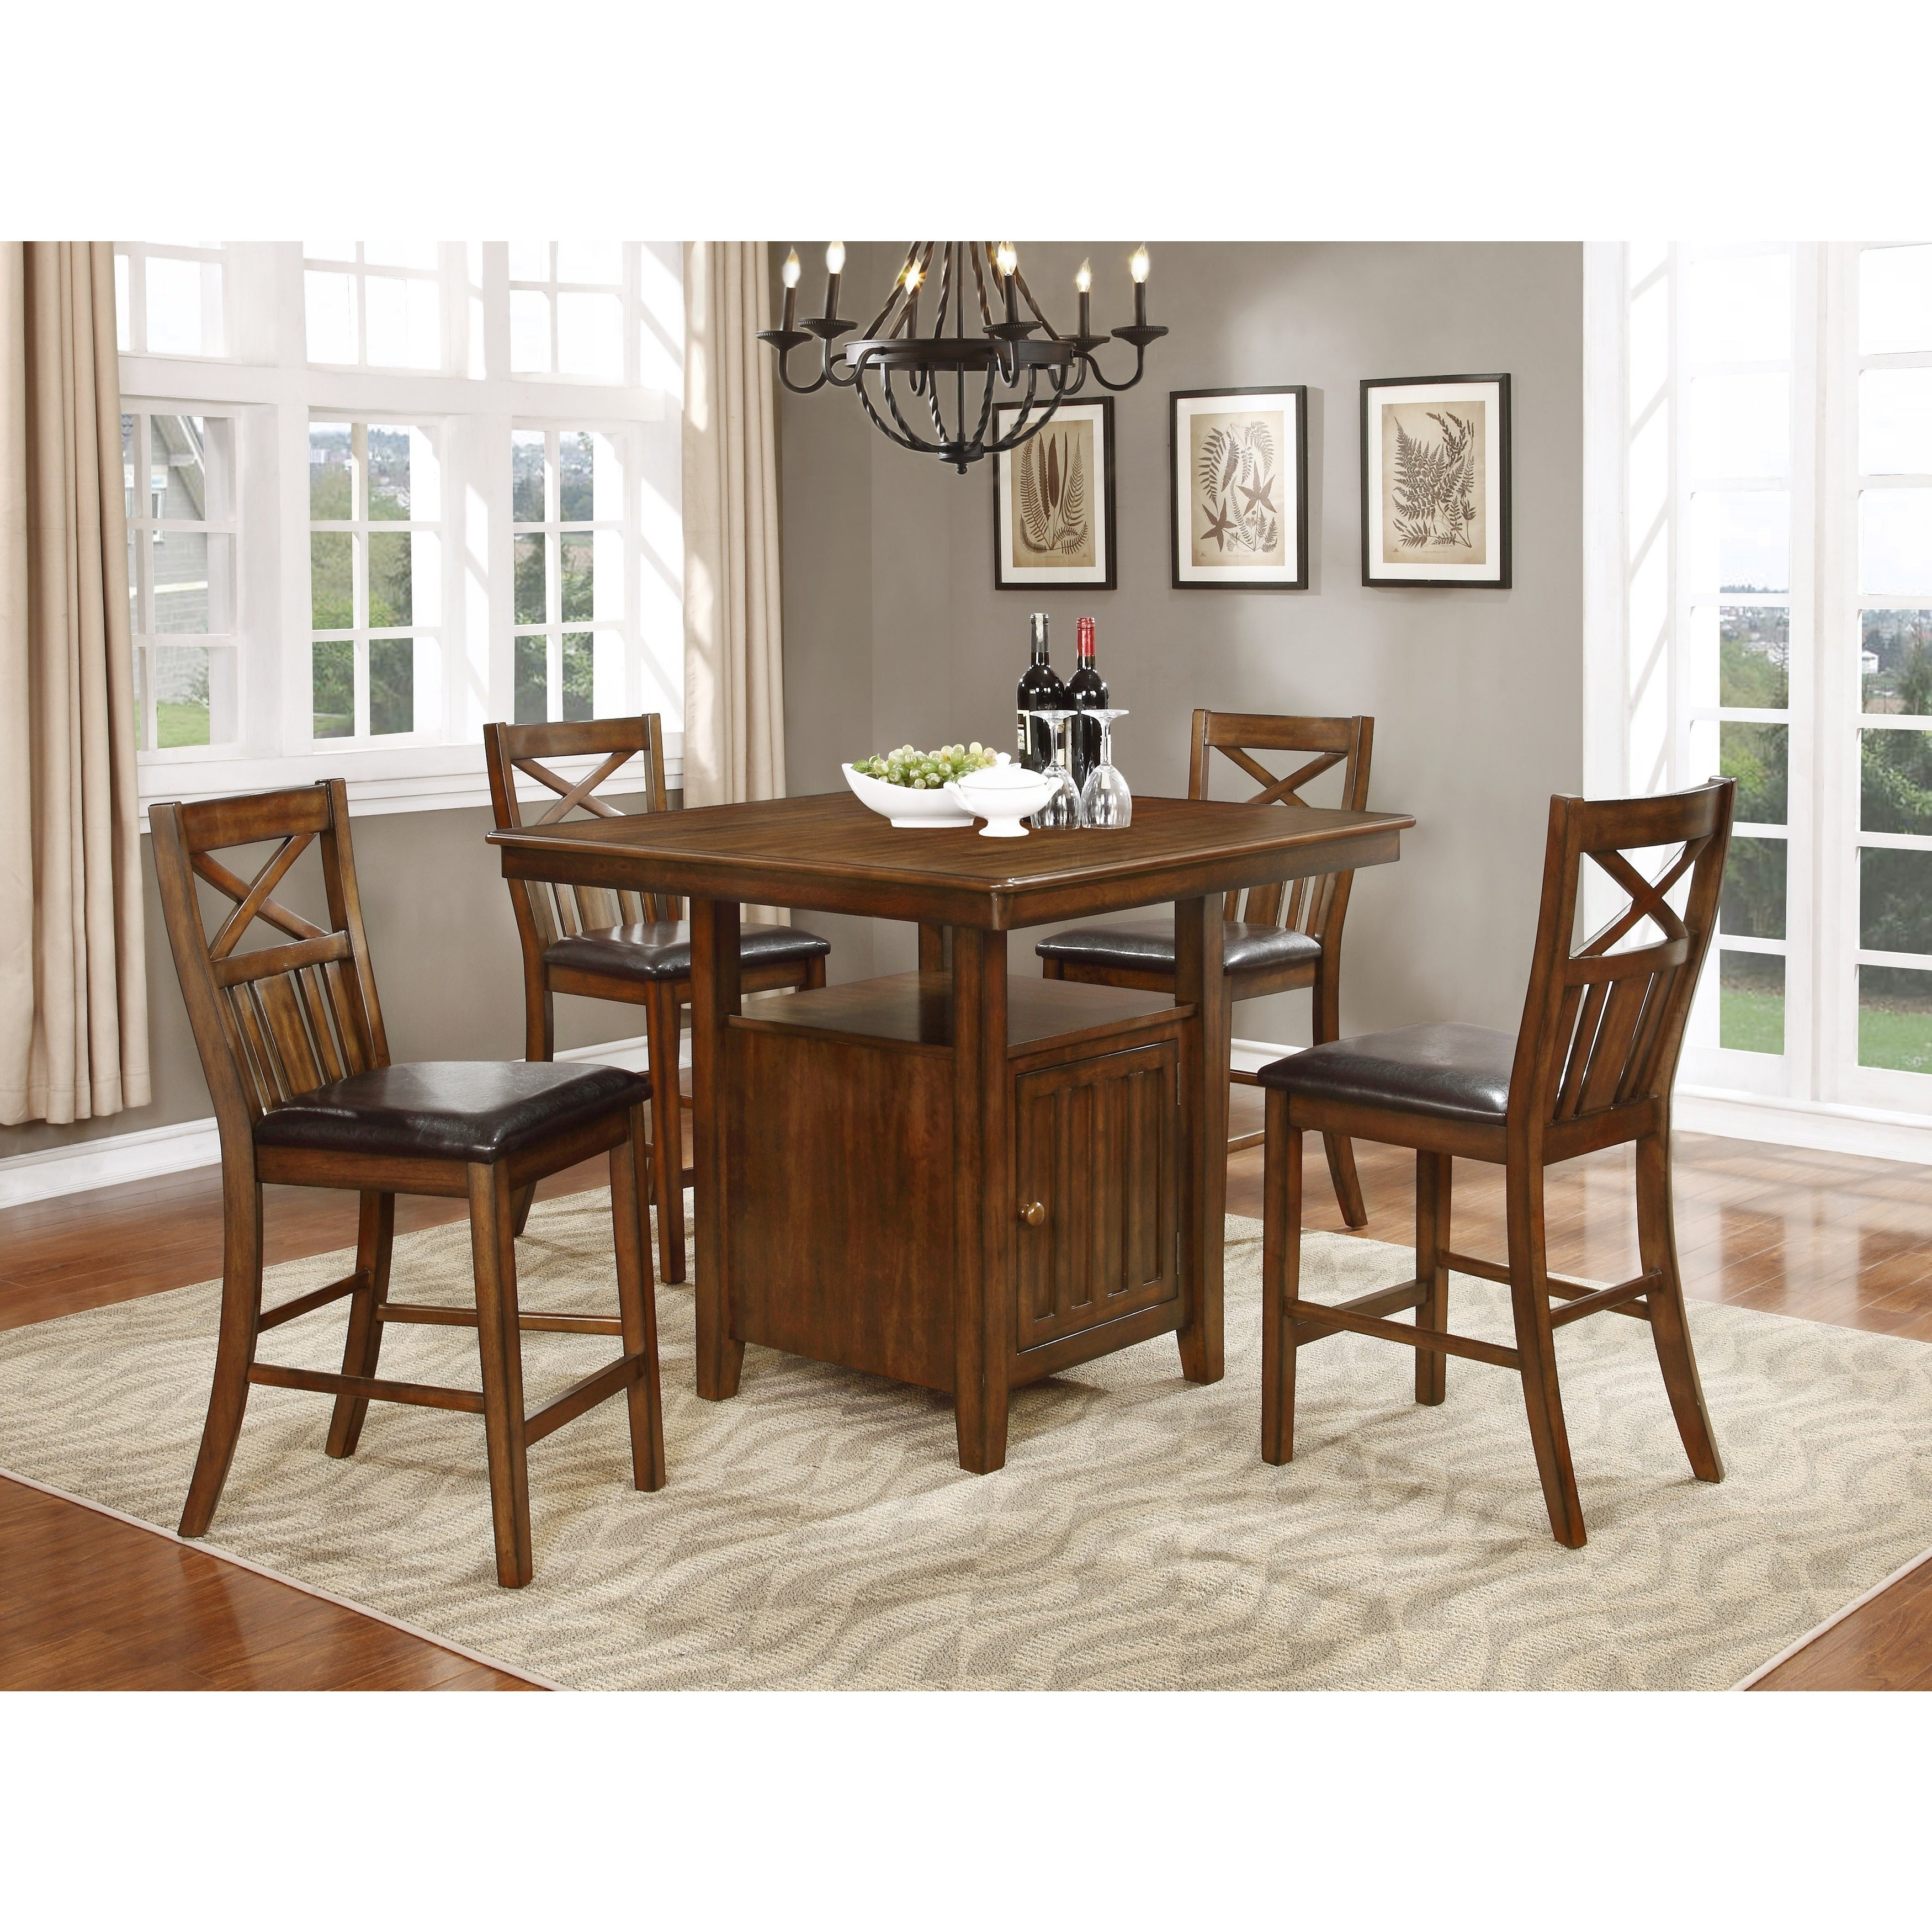 Bryson Cherry Brown Counter Height Dining Table Set W/ Storage Inside Most Recently Released Bryson 5 Piece Dining Sets (Image 8 of 20)